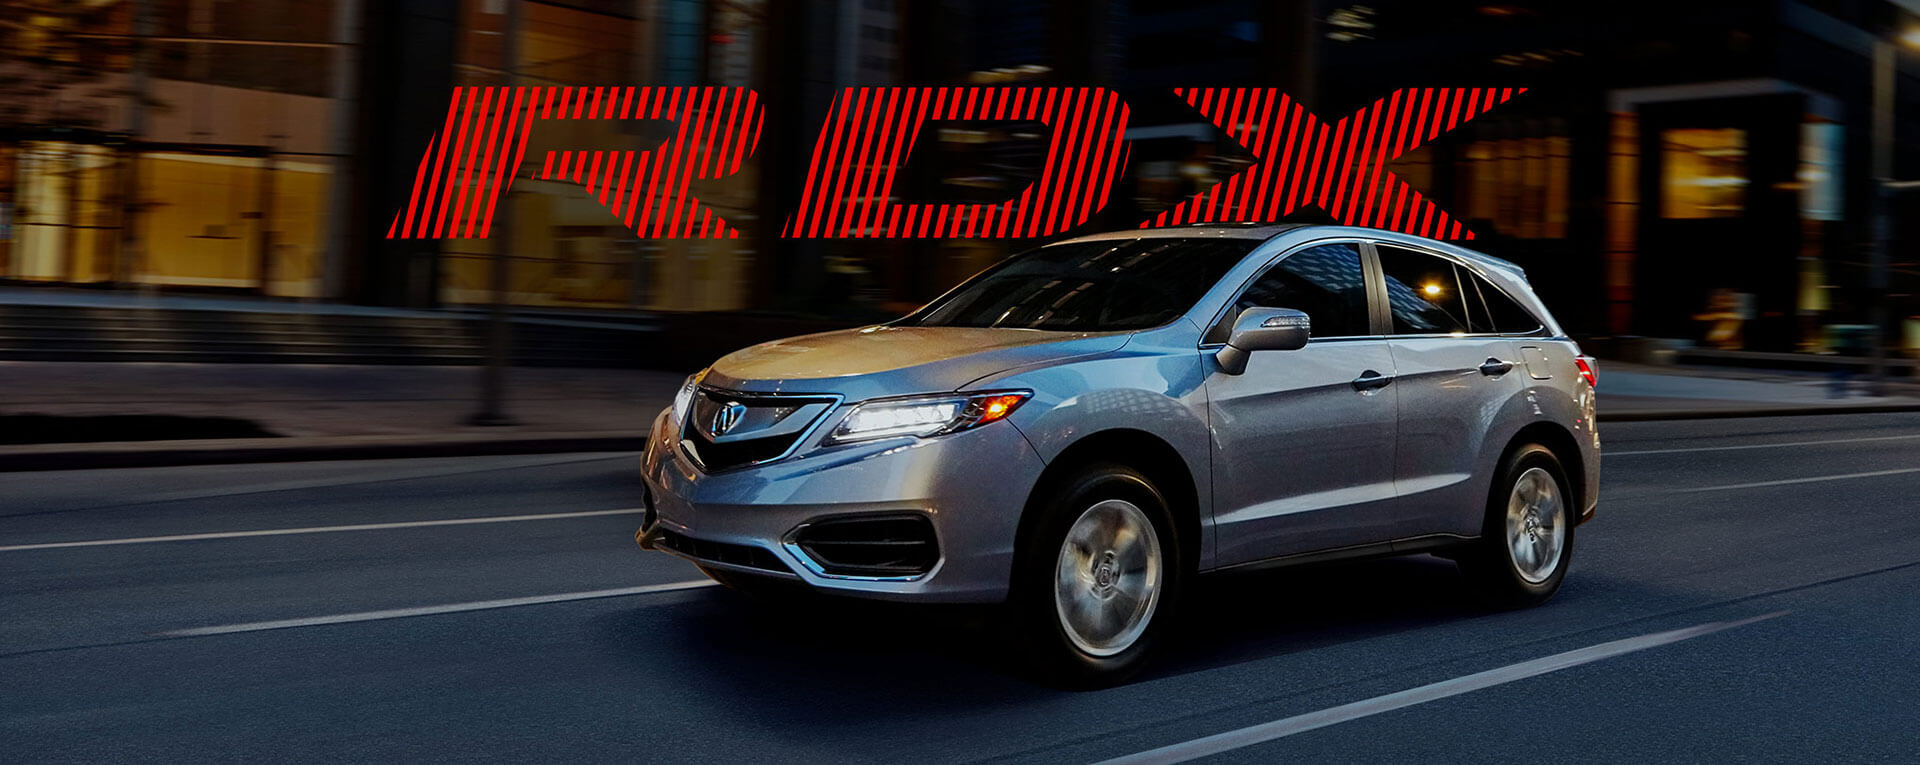 acura price awesome find cars nearest for dealer dealership closest image overview